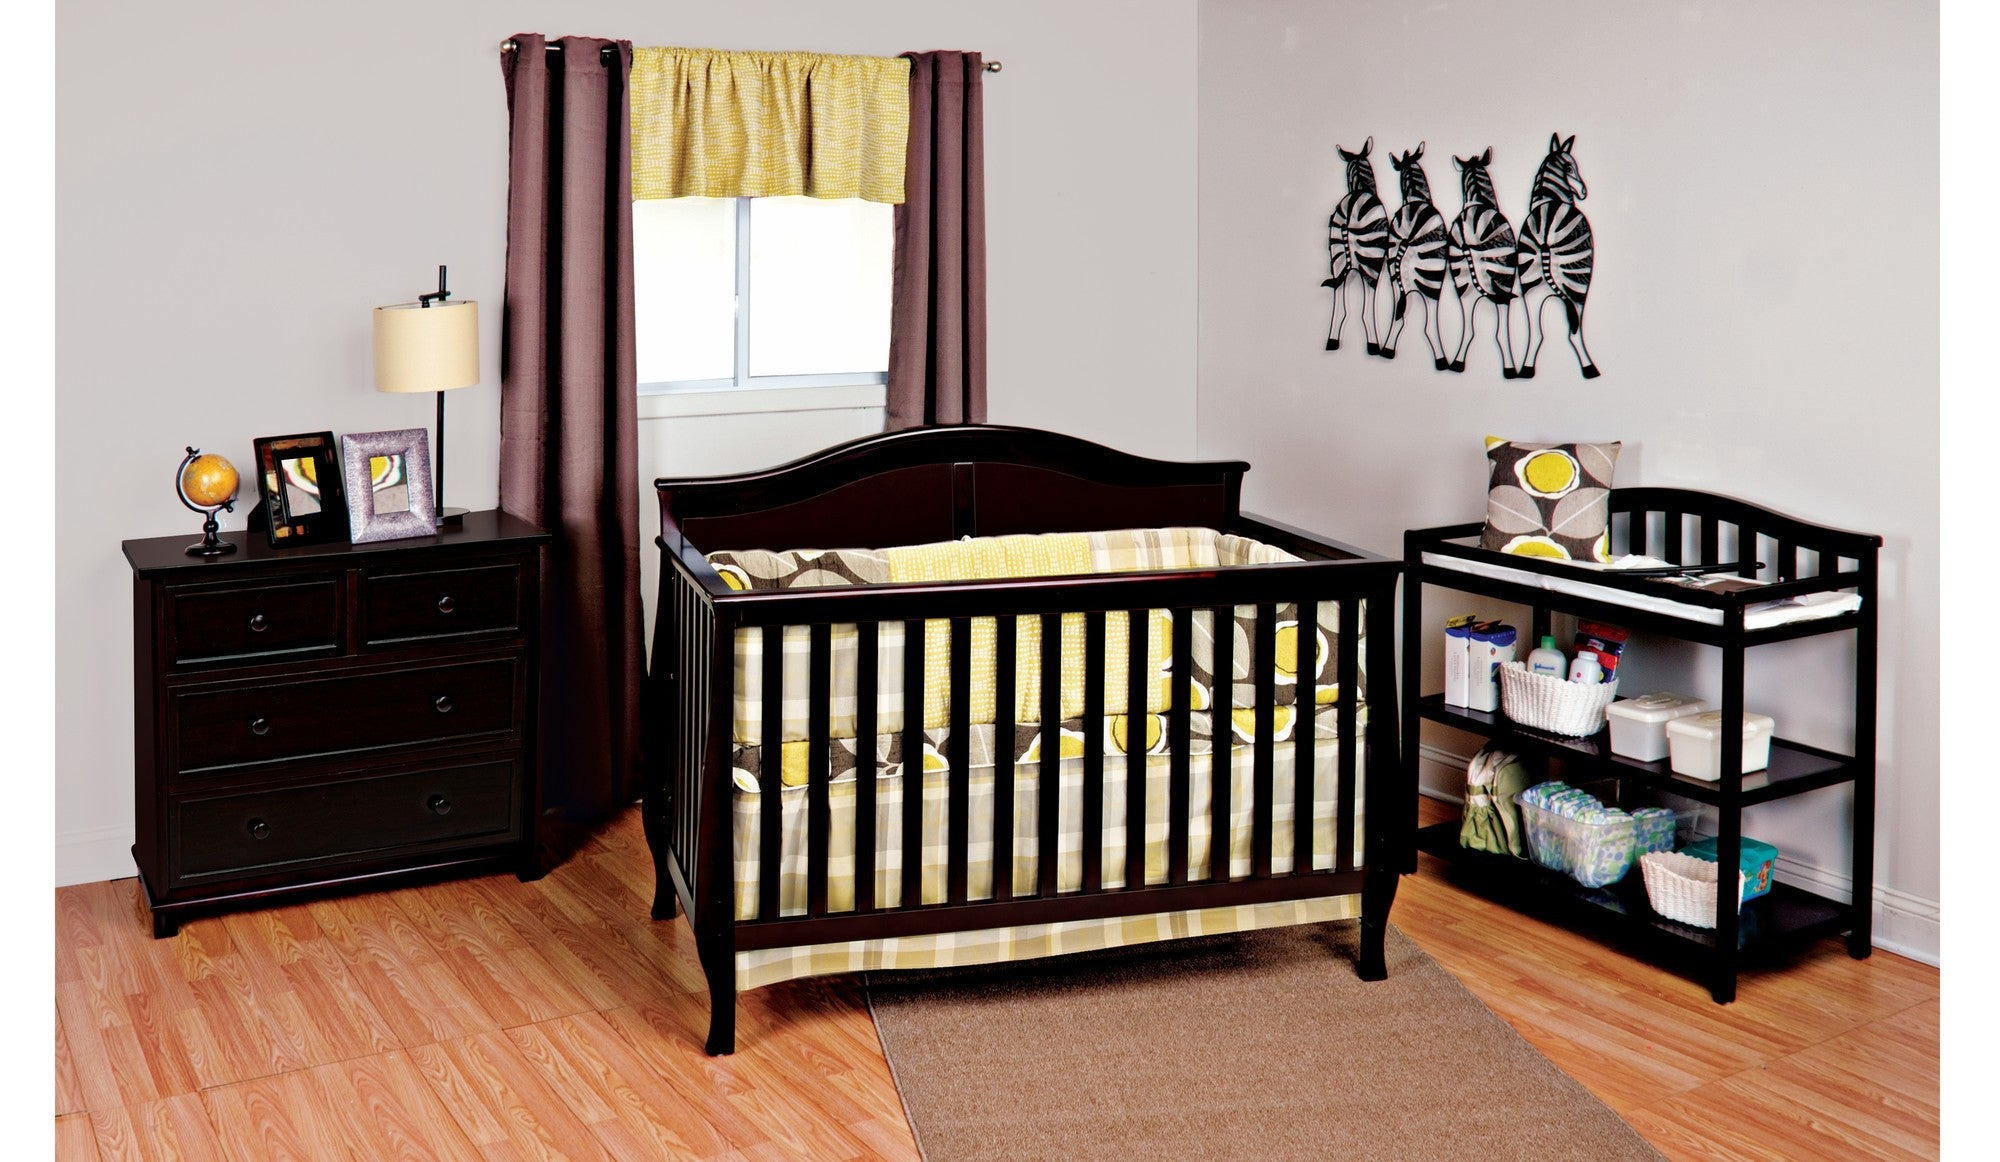 Child Craft Camden Convertible Crib 4 In 1 F31001 07